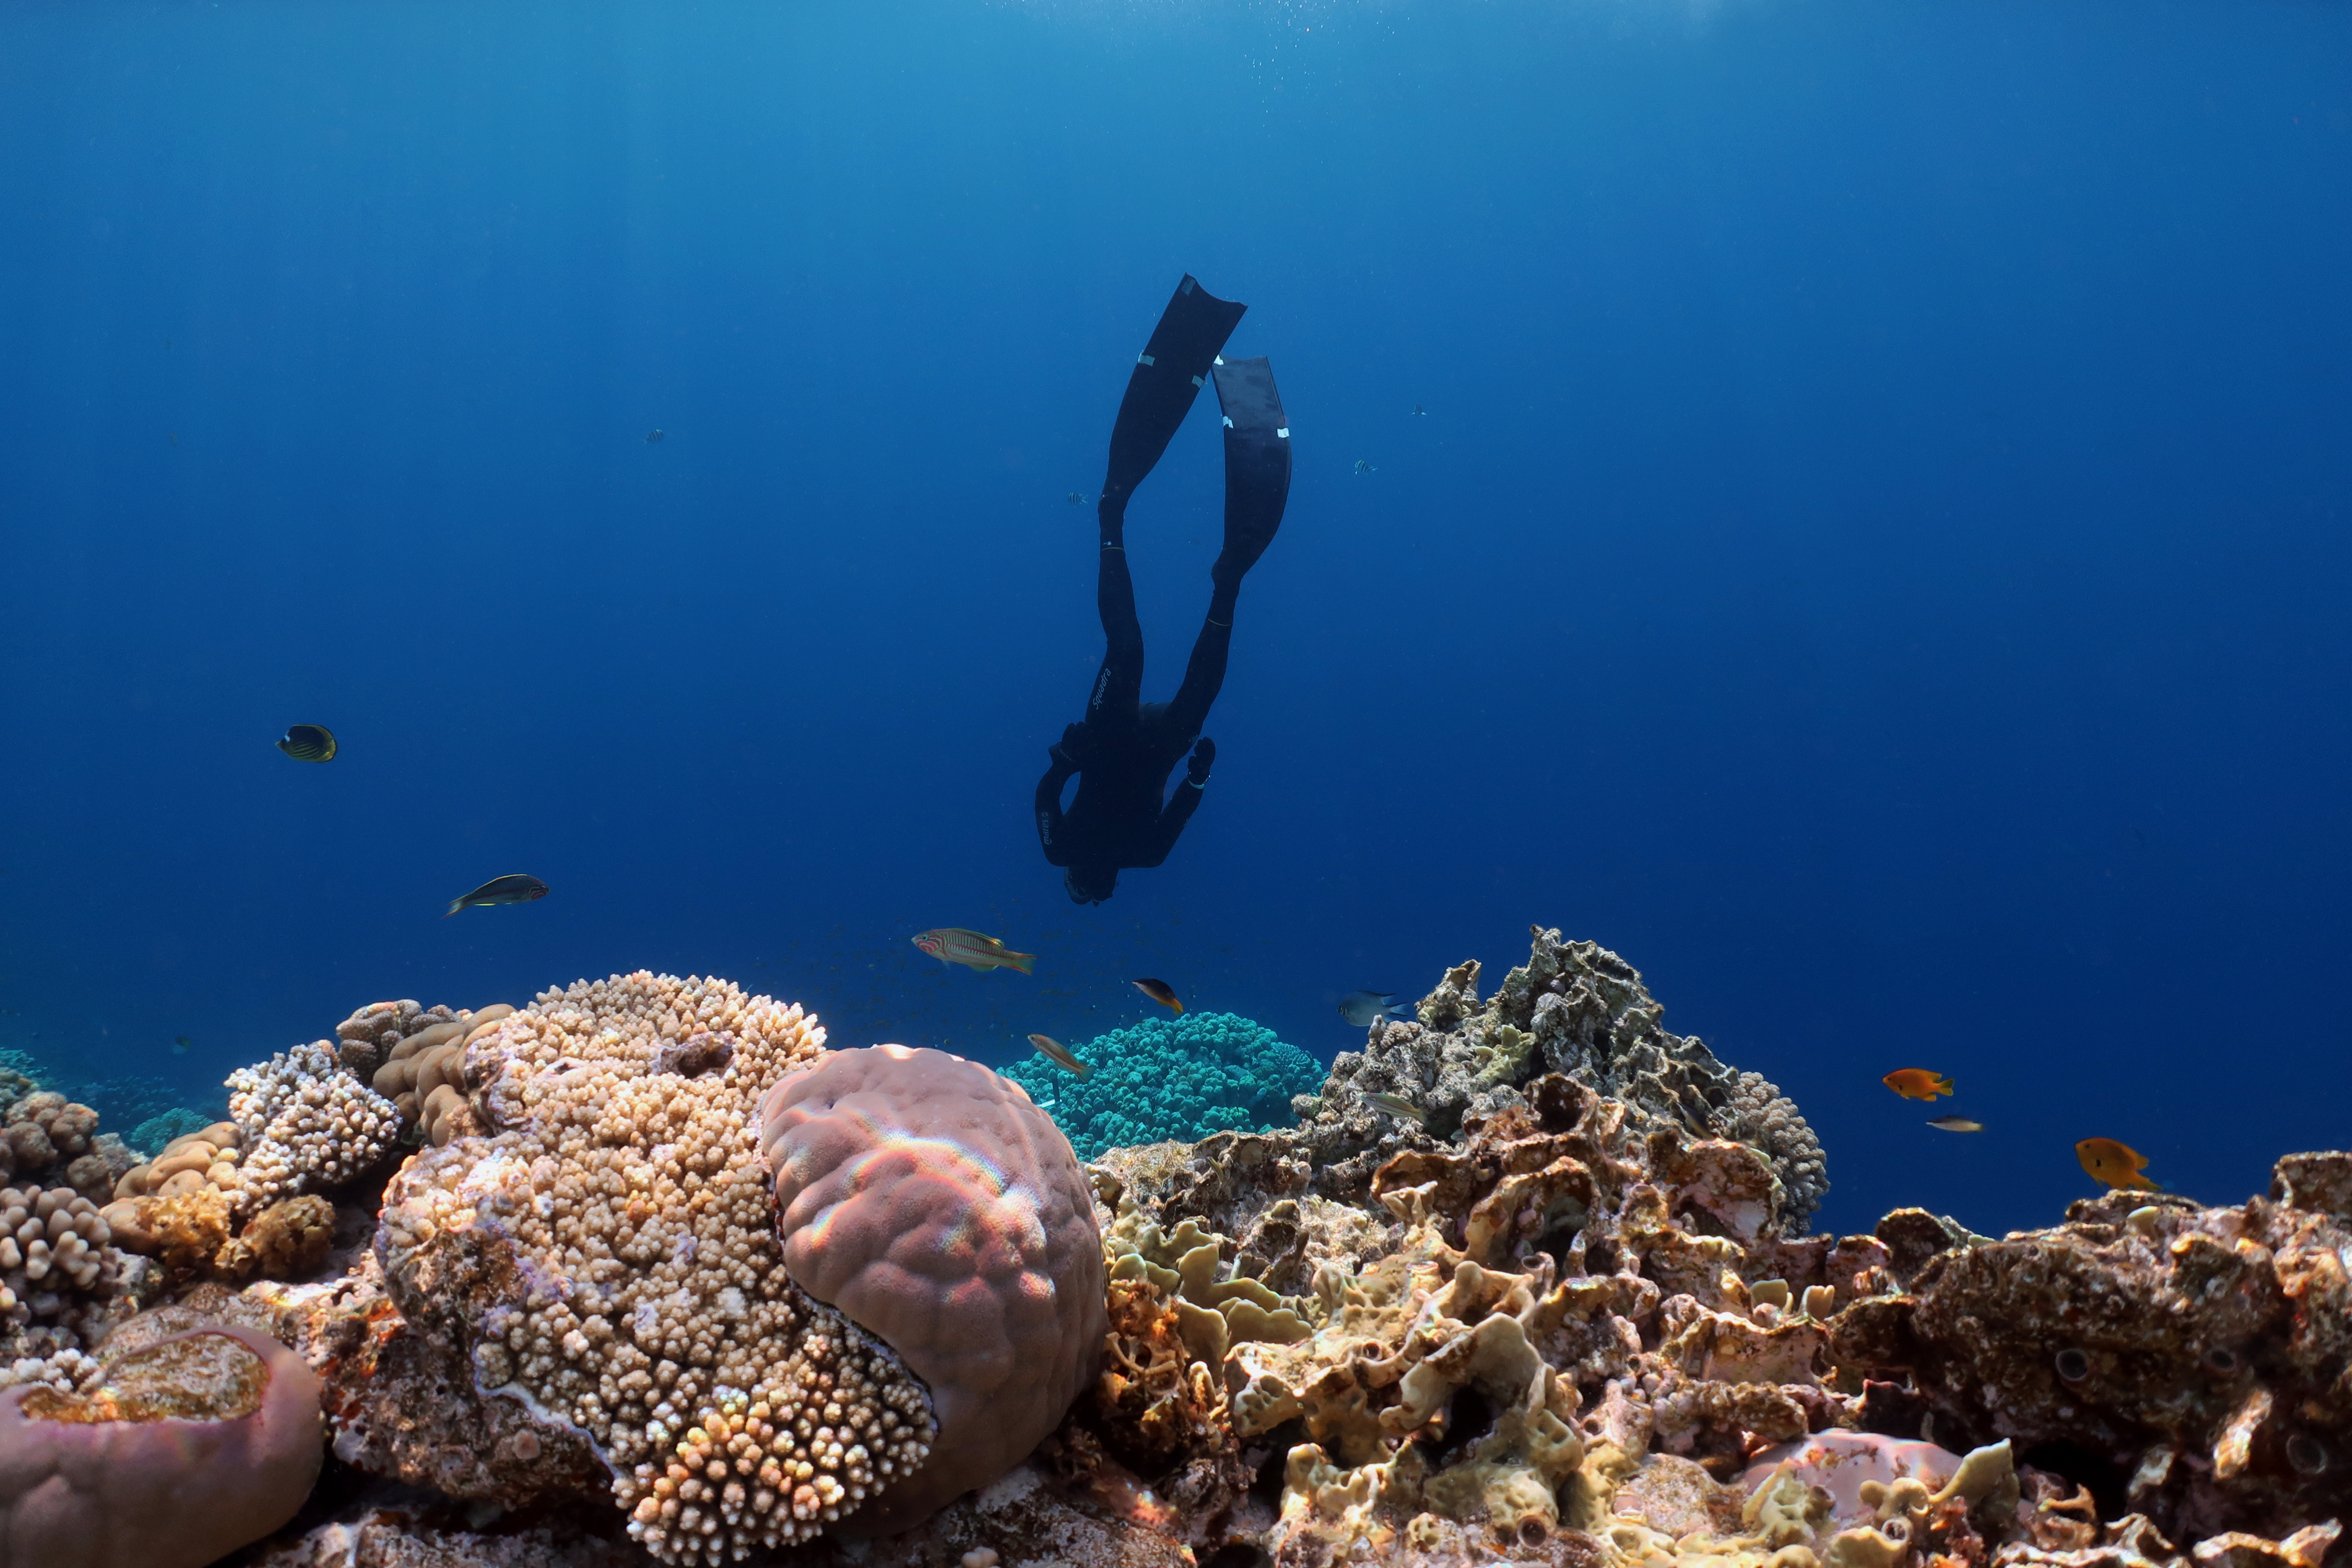 United Nations Environment Assembly 4 resolution on Coral Reefs